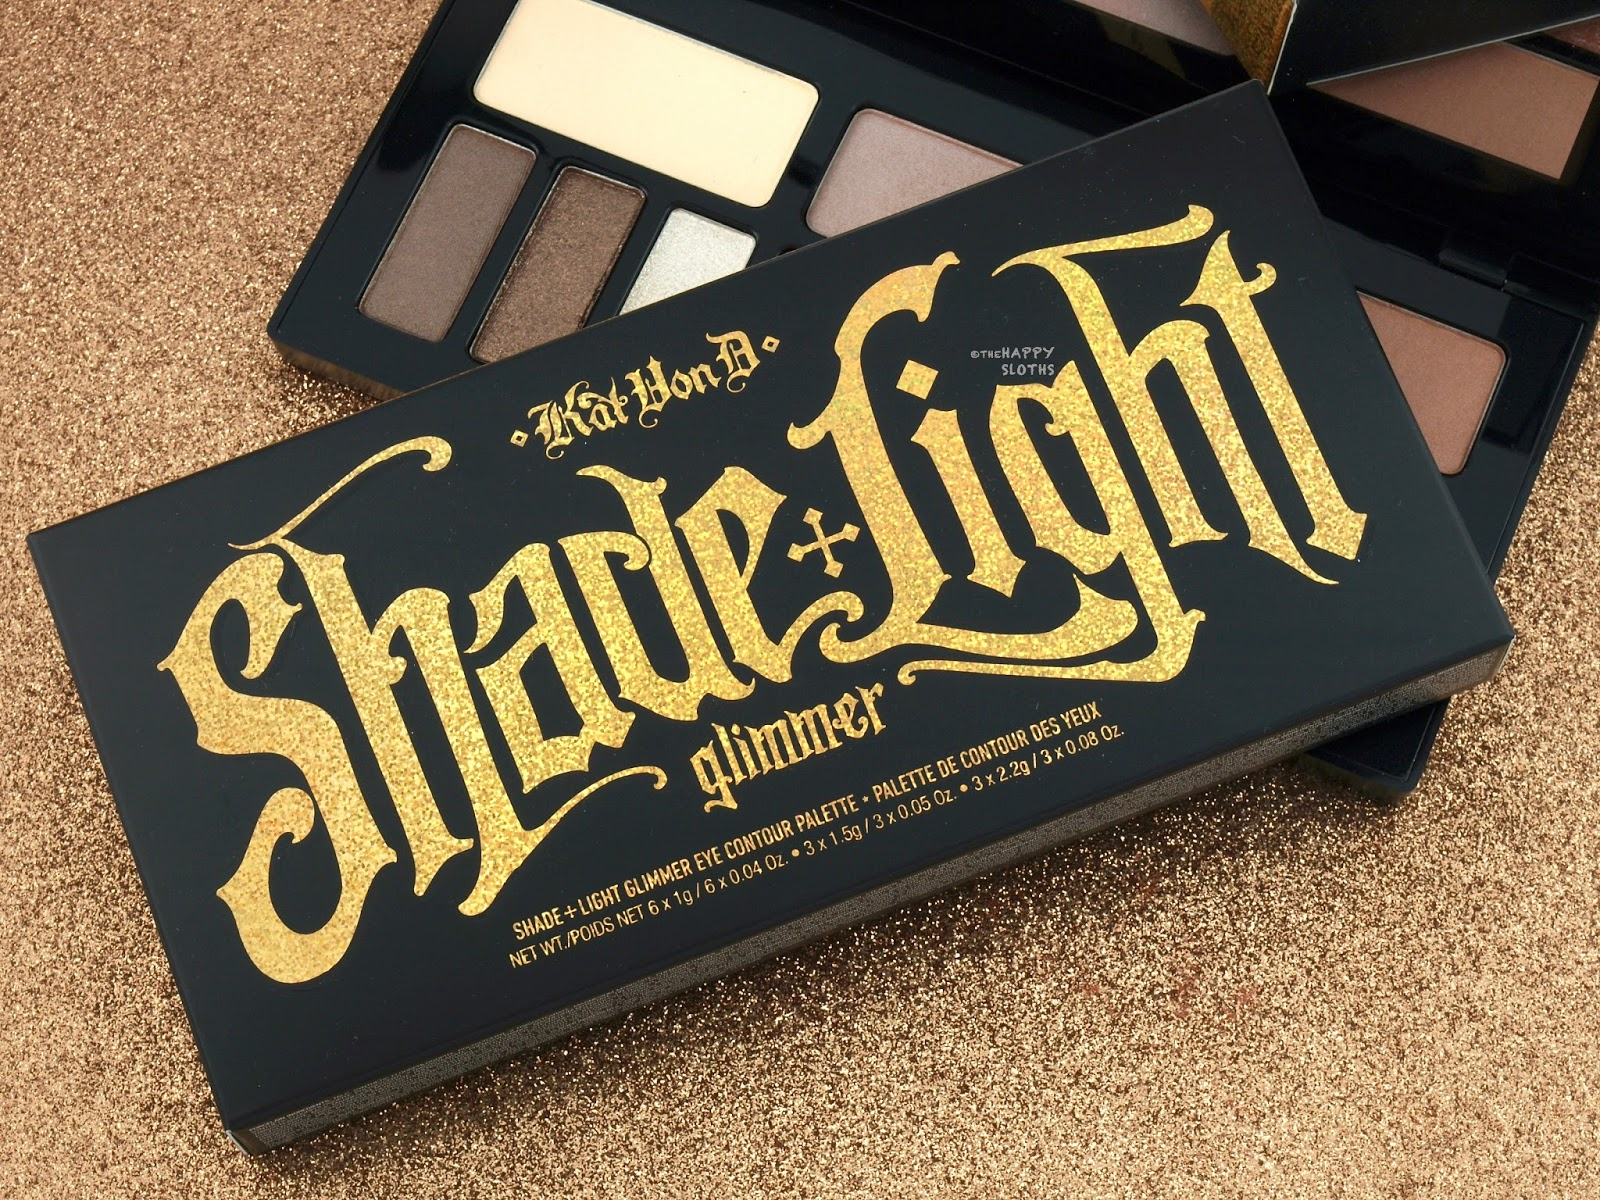 Kat Von D | Shade + Light Glimmer Eye Contour Palette: Review and Swatches